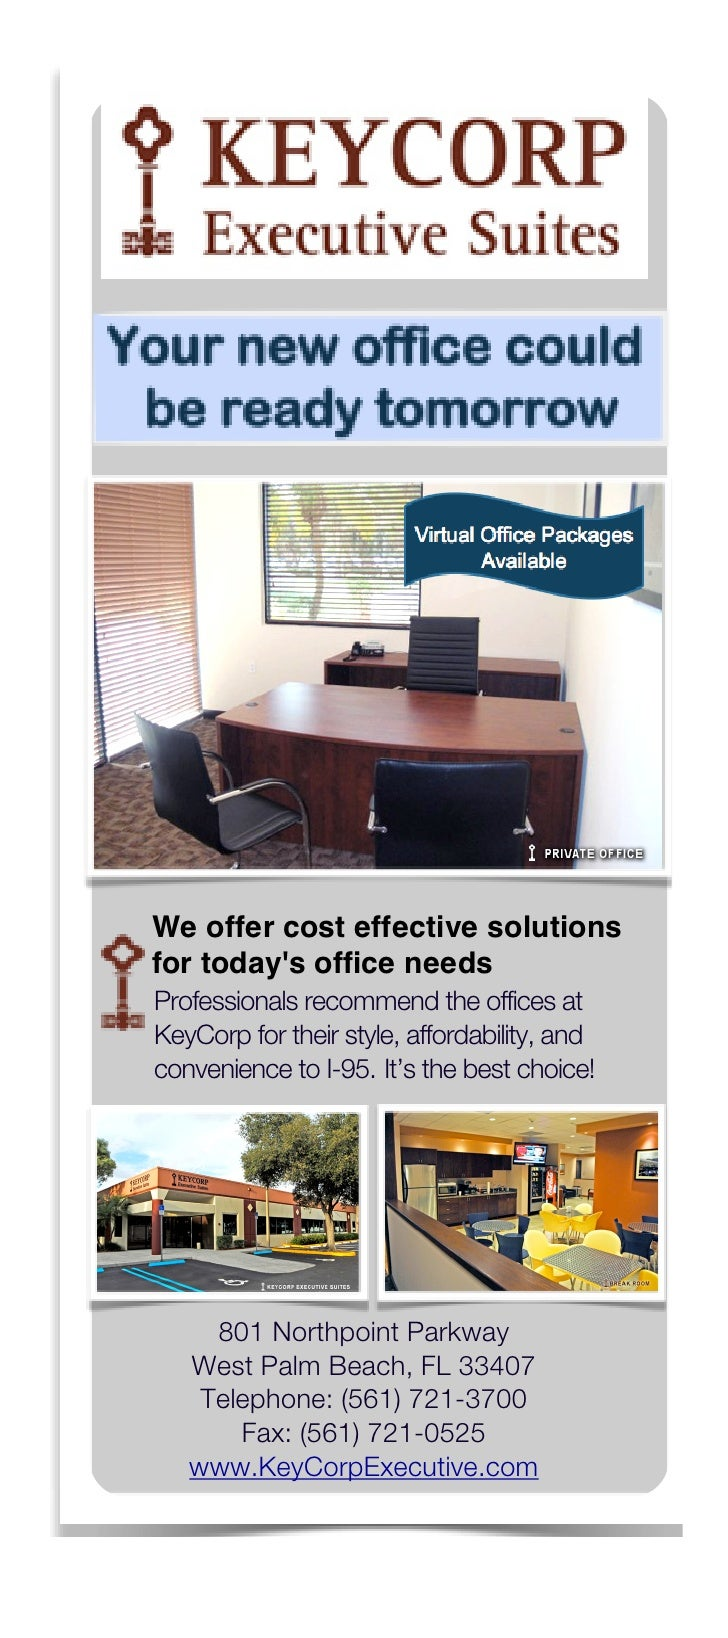 We offer cost effective solutions for today's office needs Professionals recommend the offices at KeyCorp for their style,...